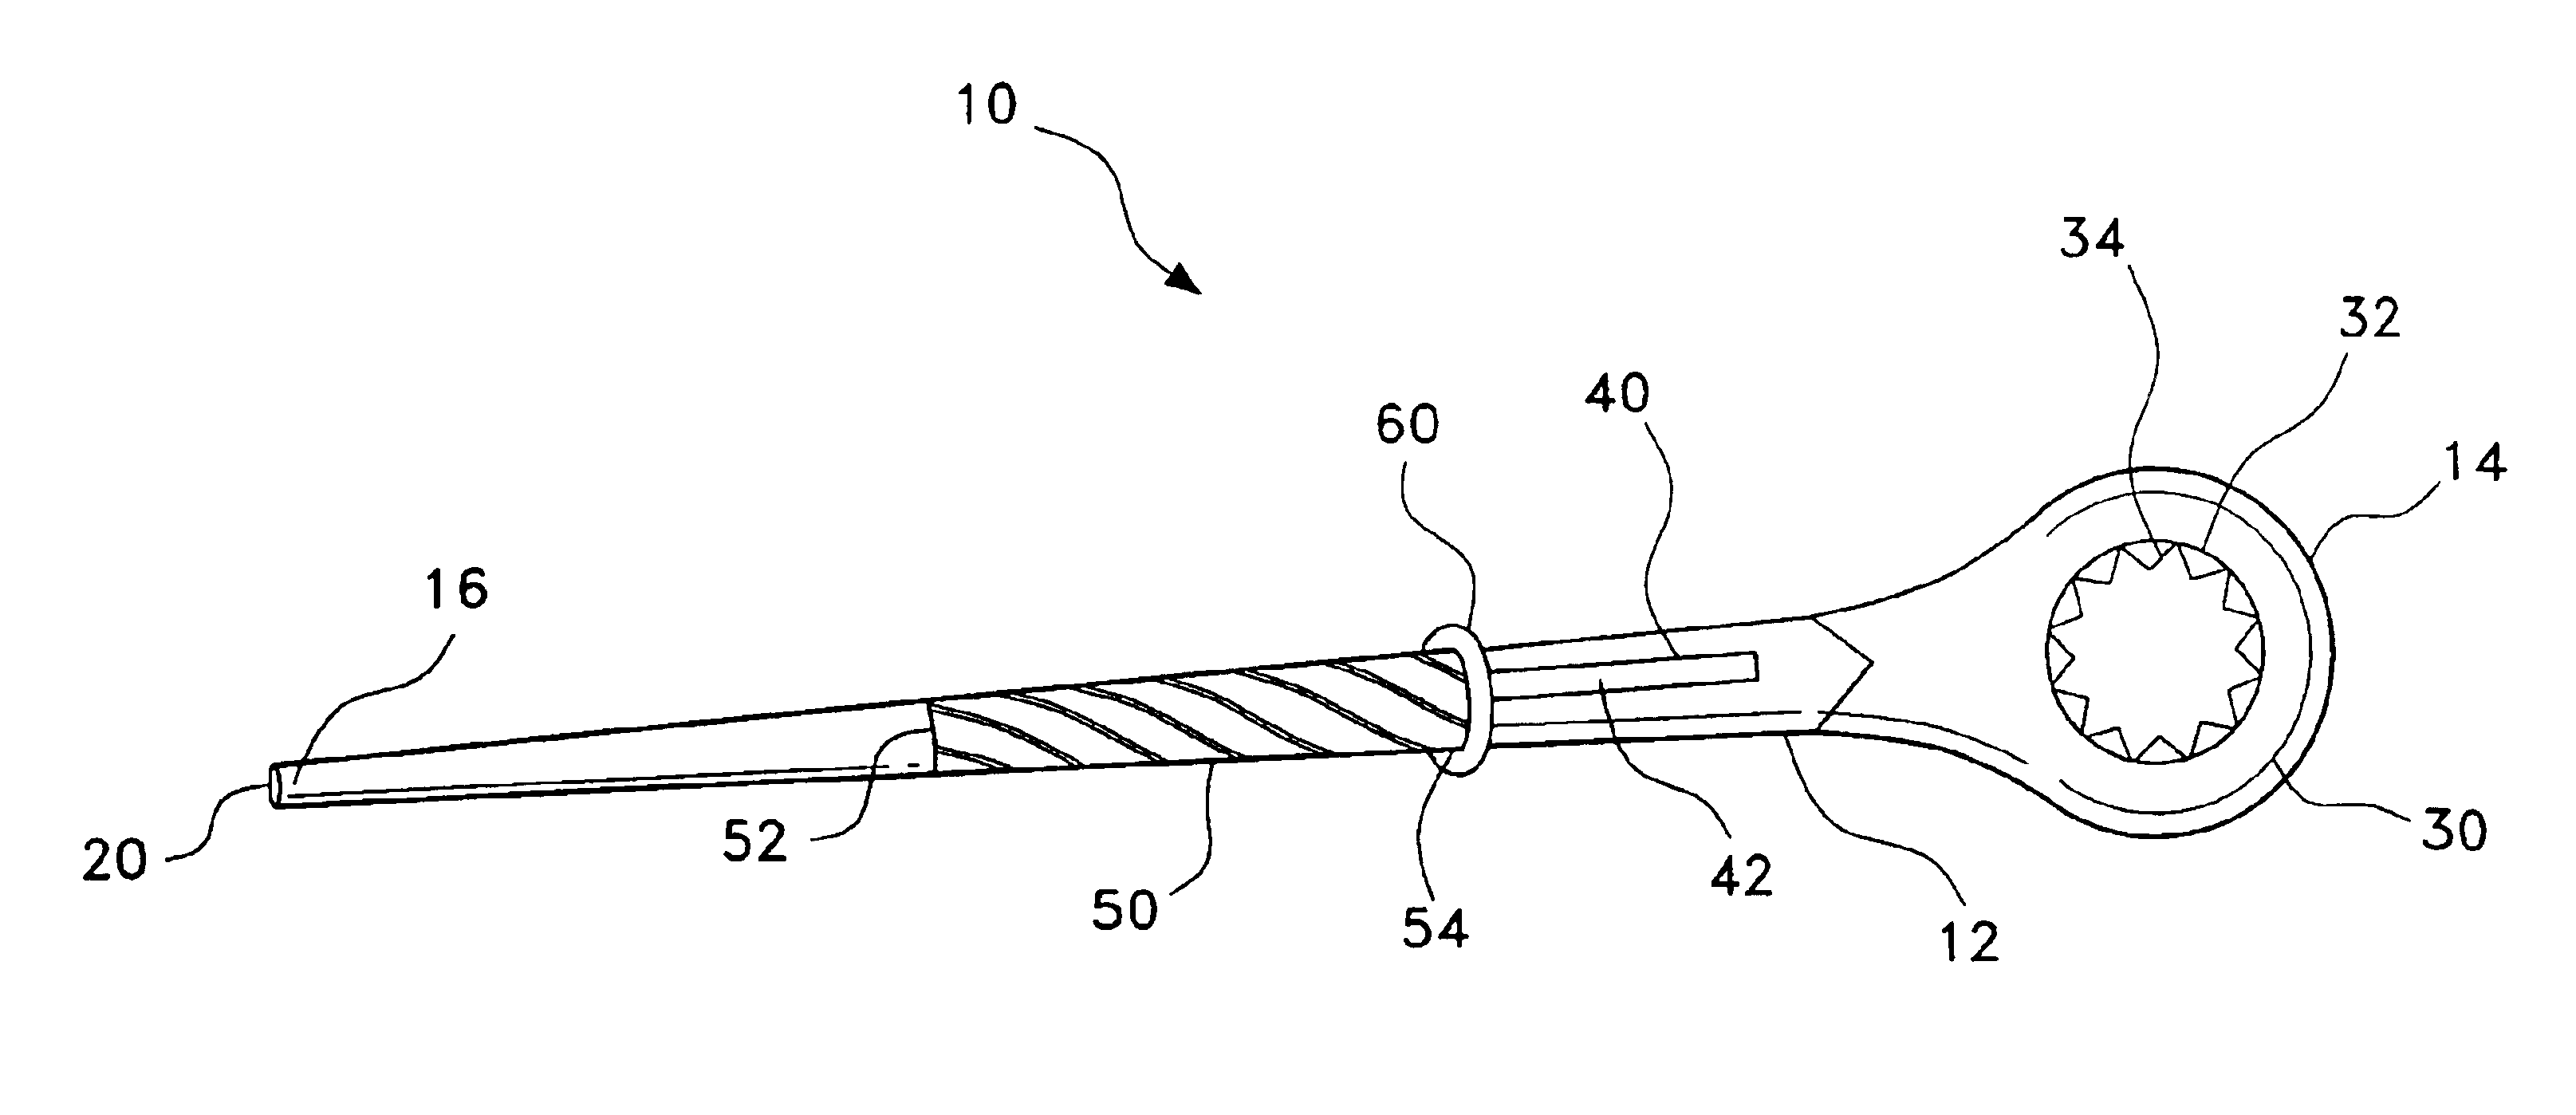 spud wrench drawing. patent drawing spud wrench r